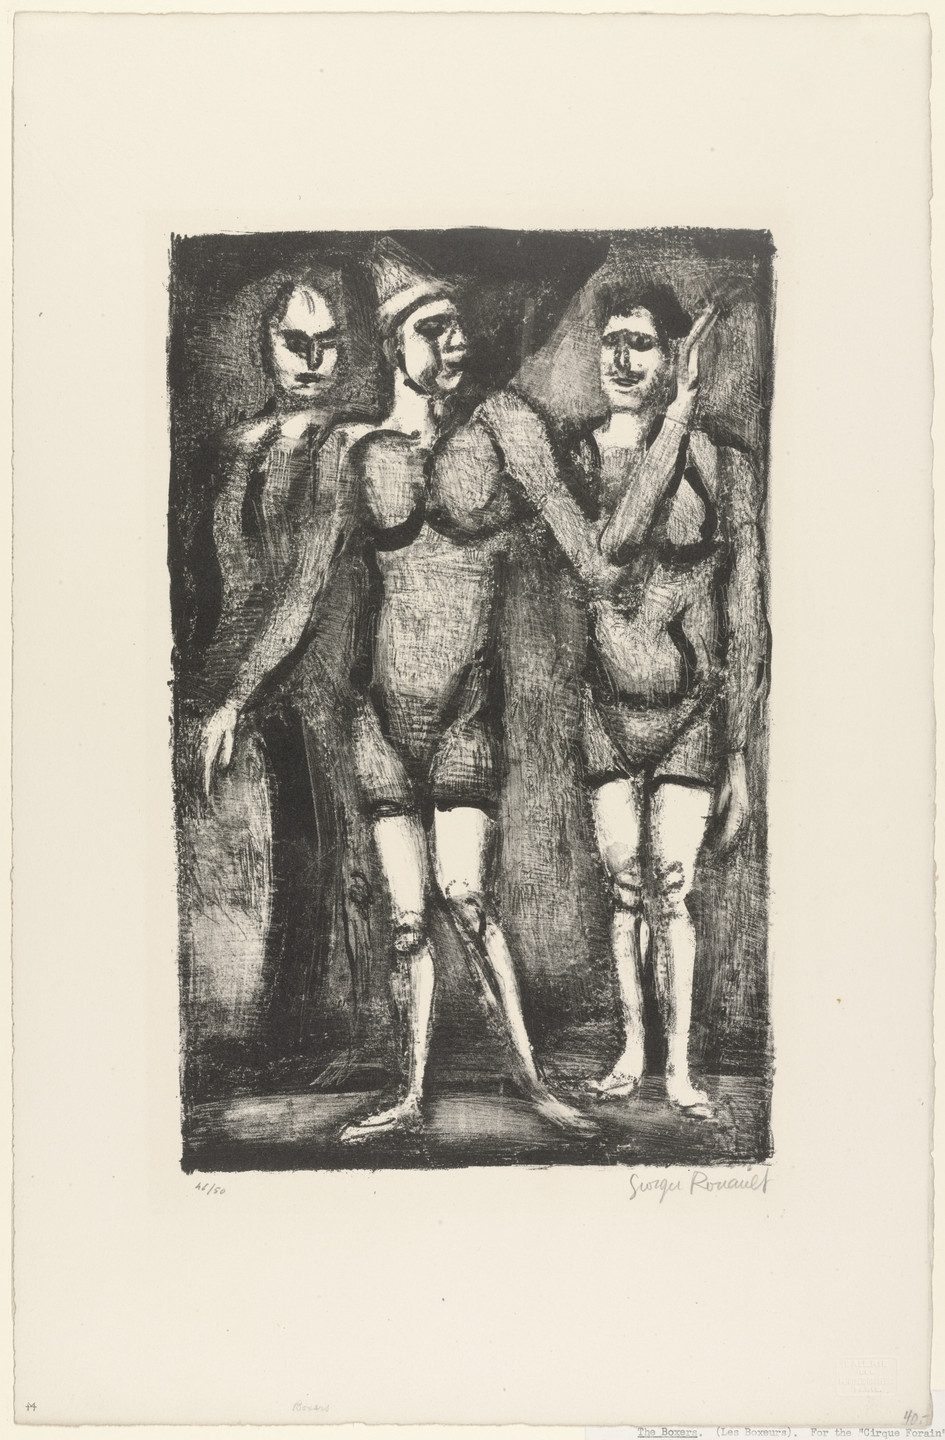 Georges Rouault. The Boxers. Wandering Circus (Les Boxeurs. Cirque forain). c. 1924-26